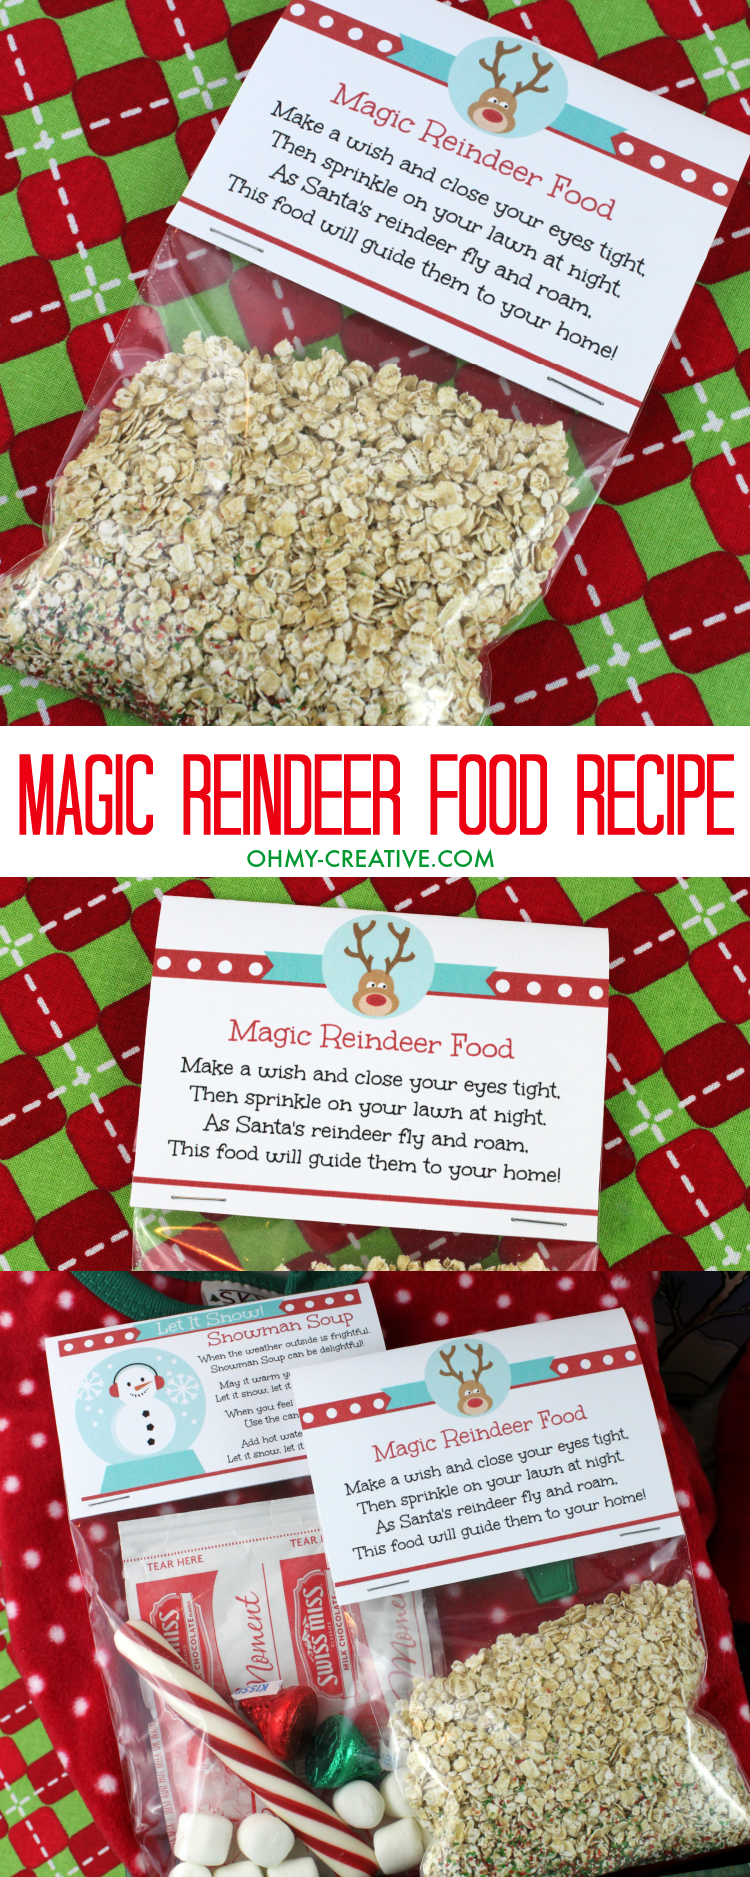 Magic Reindeer Food Recipe! | OHMY-CREATIVE.COM | Reindeer Food Poem | Reindeer Food Recipe | How to make Reindeer Food | Reindeer Dust Labels | Christmas Printables